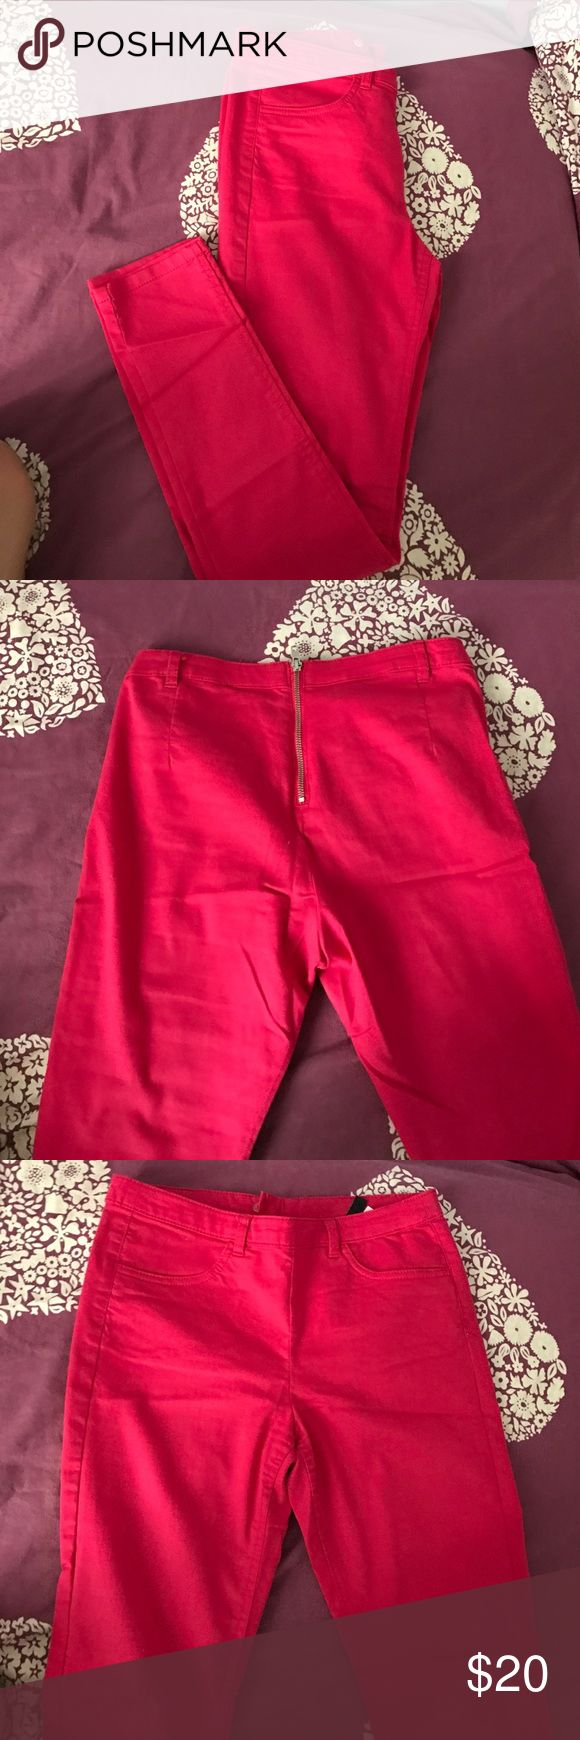 Hot pink pants from h&m Hot pink I wore these once! So they are in great condition! Pockets in front with none on back and zipper in the back H&M Pants Skinny